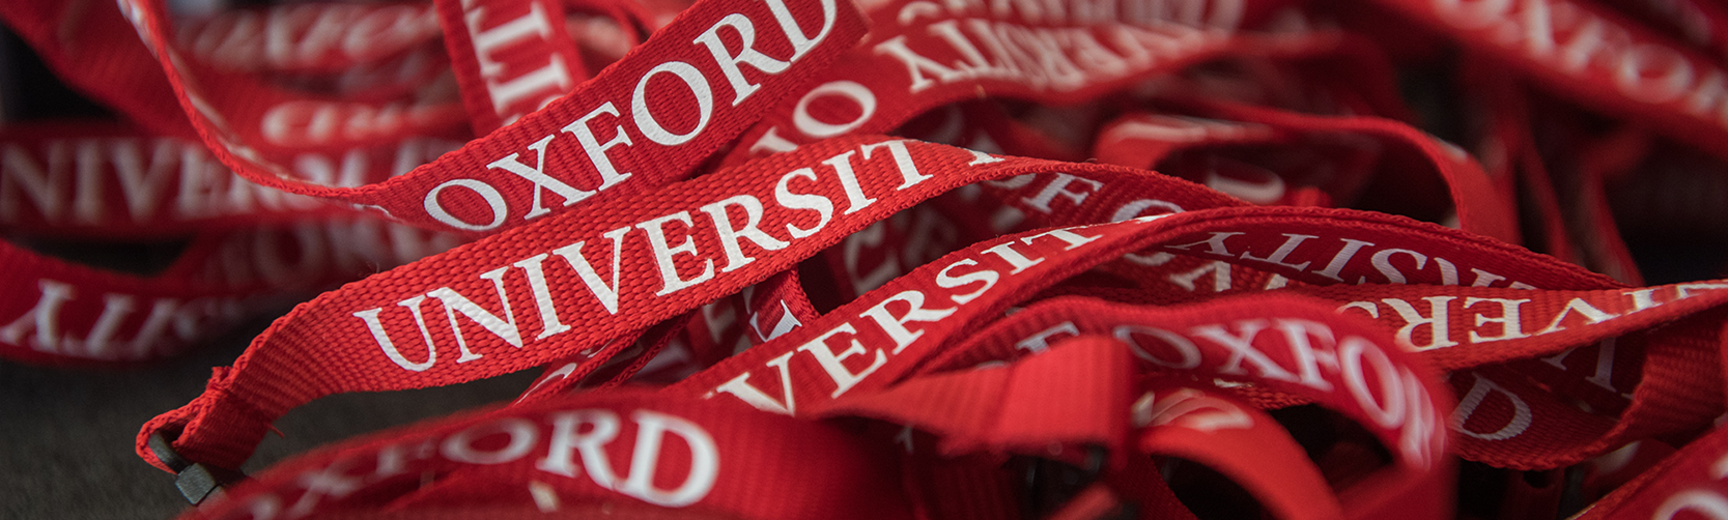 Meeting Minds red lanyards